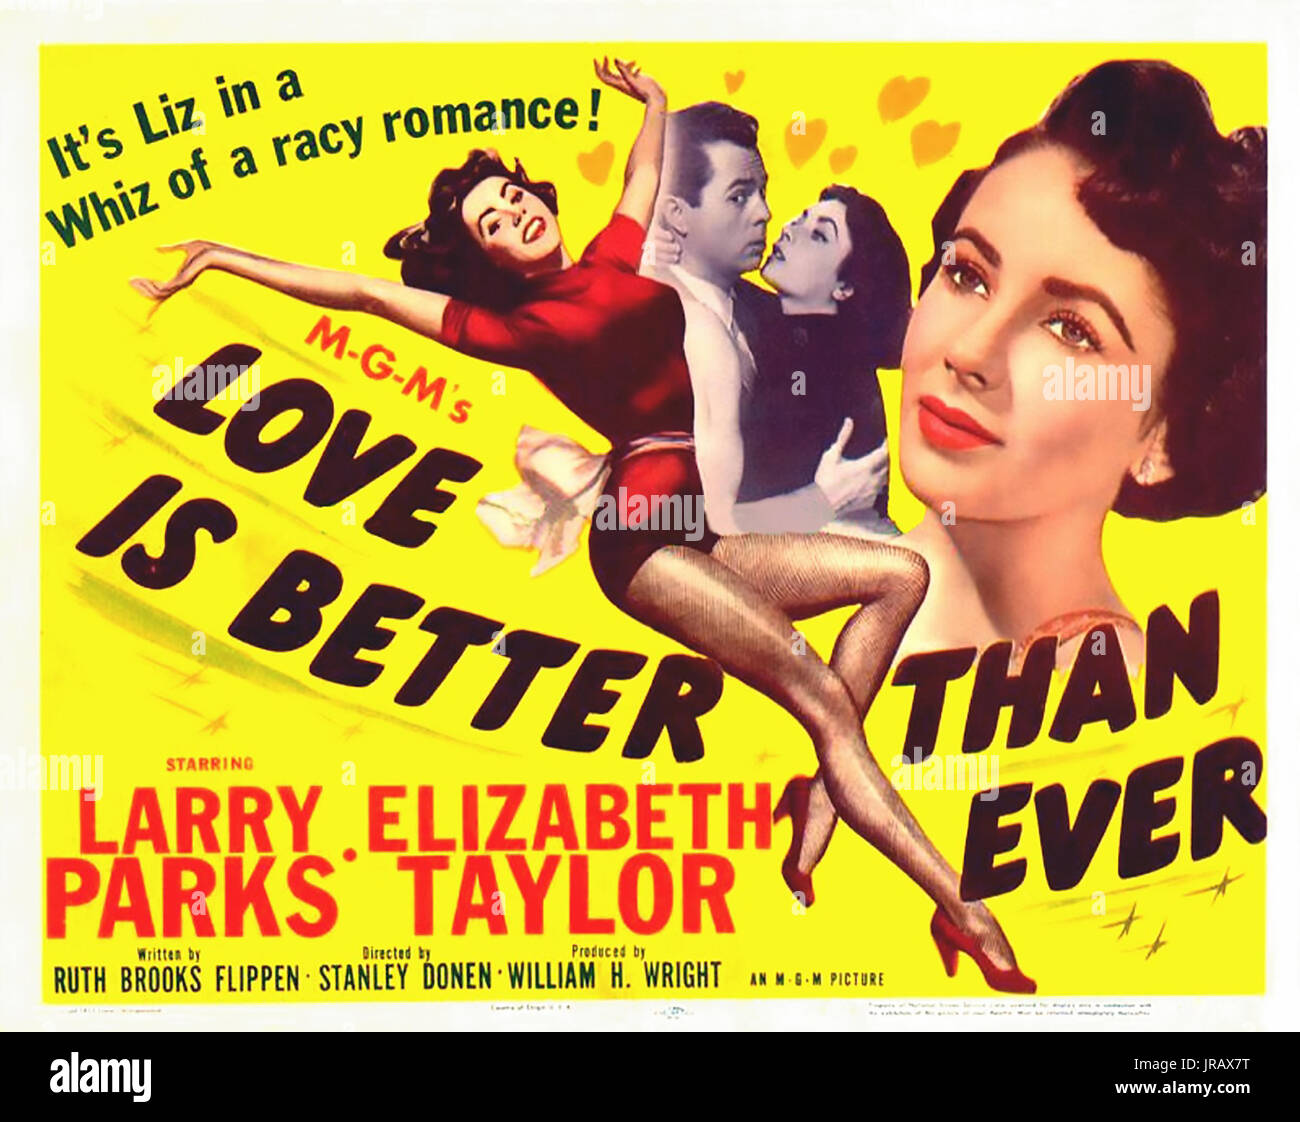 LOVE IS BETTER THAN EVER 1952 MGM film with Elizabeth Taylor - Stock Image